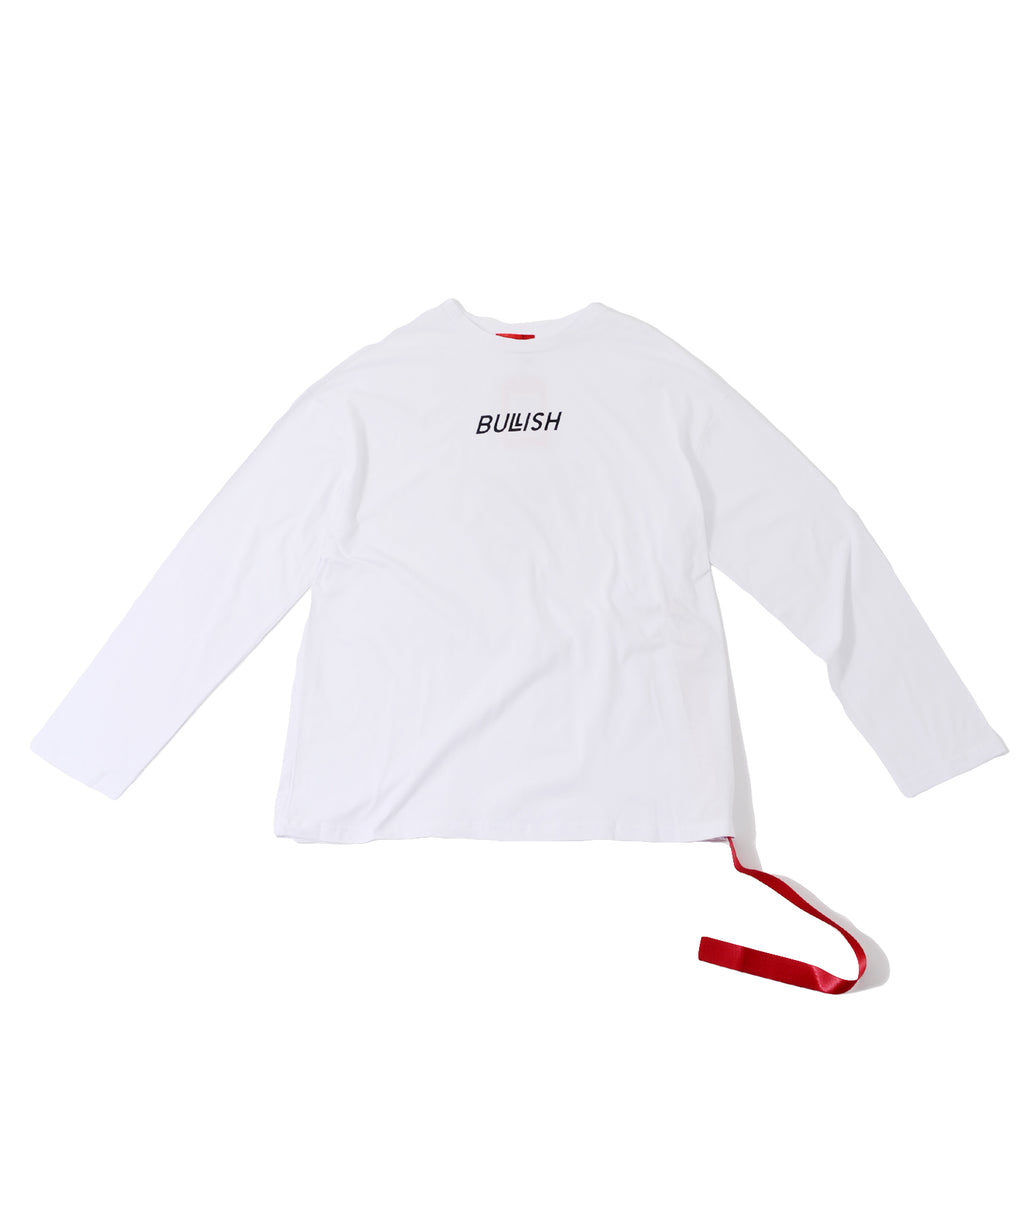 BULLISH Oversized Long-sleeved  T-shirt - with belt tape